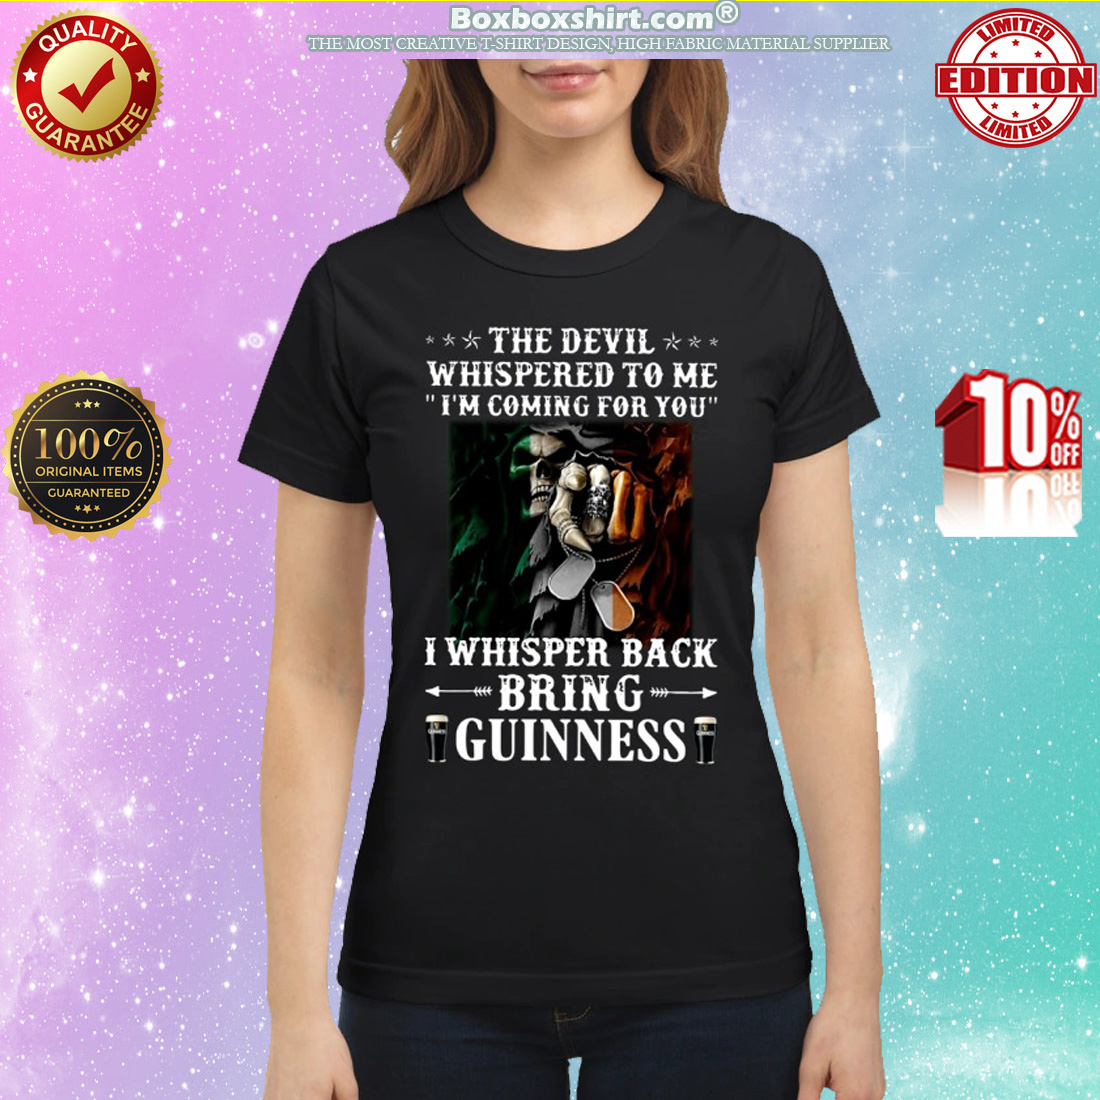 The devil whispered to me i'm coming for you I whisper back bring guinness classic shirt